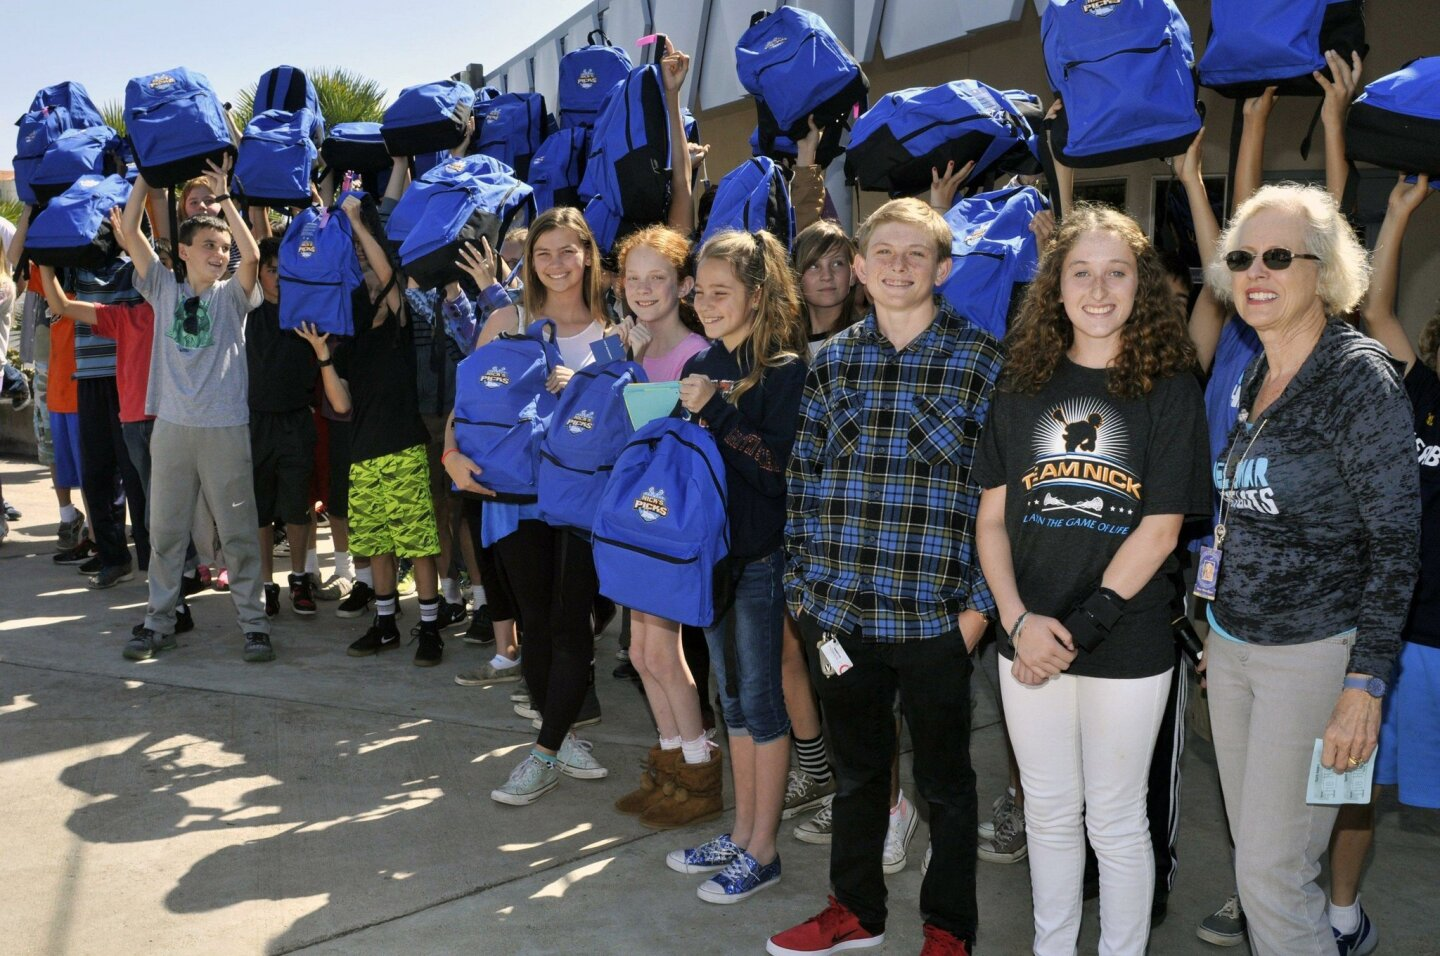 Nick's Picks founder Nick Wallace, Lexie Wallace, Del Mar Heights Principal Wendy Wardlow and students with forty seven full backpacks